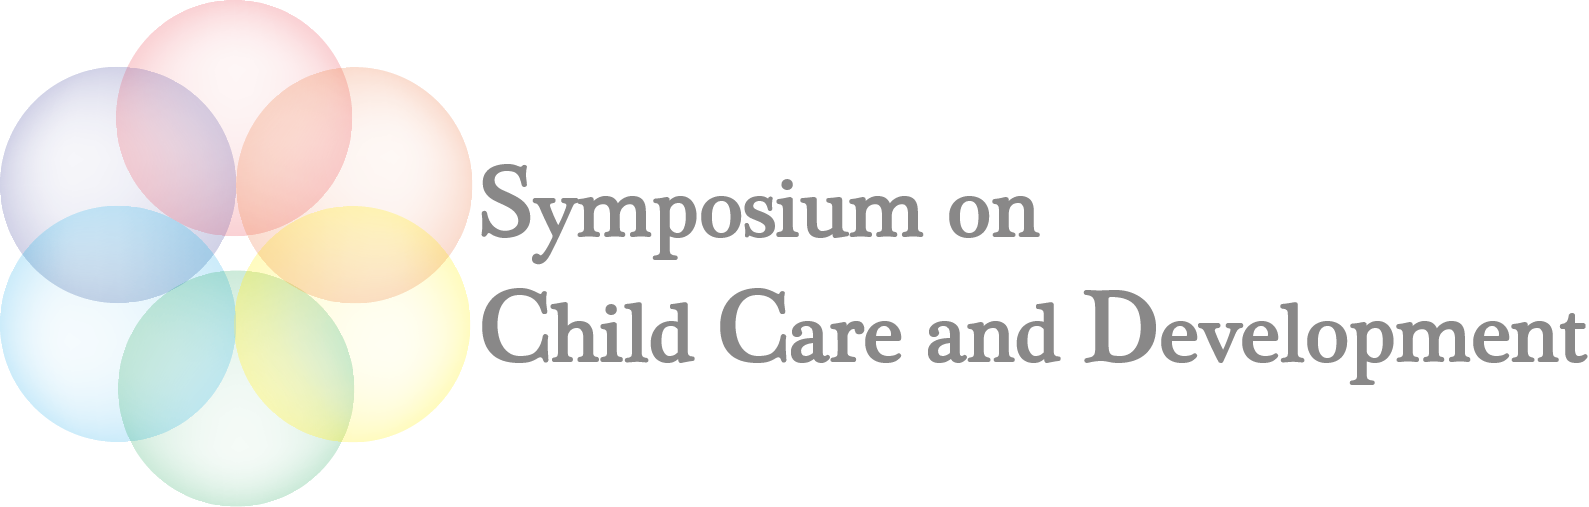 Symposium on Child Care and Development